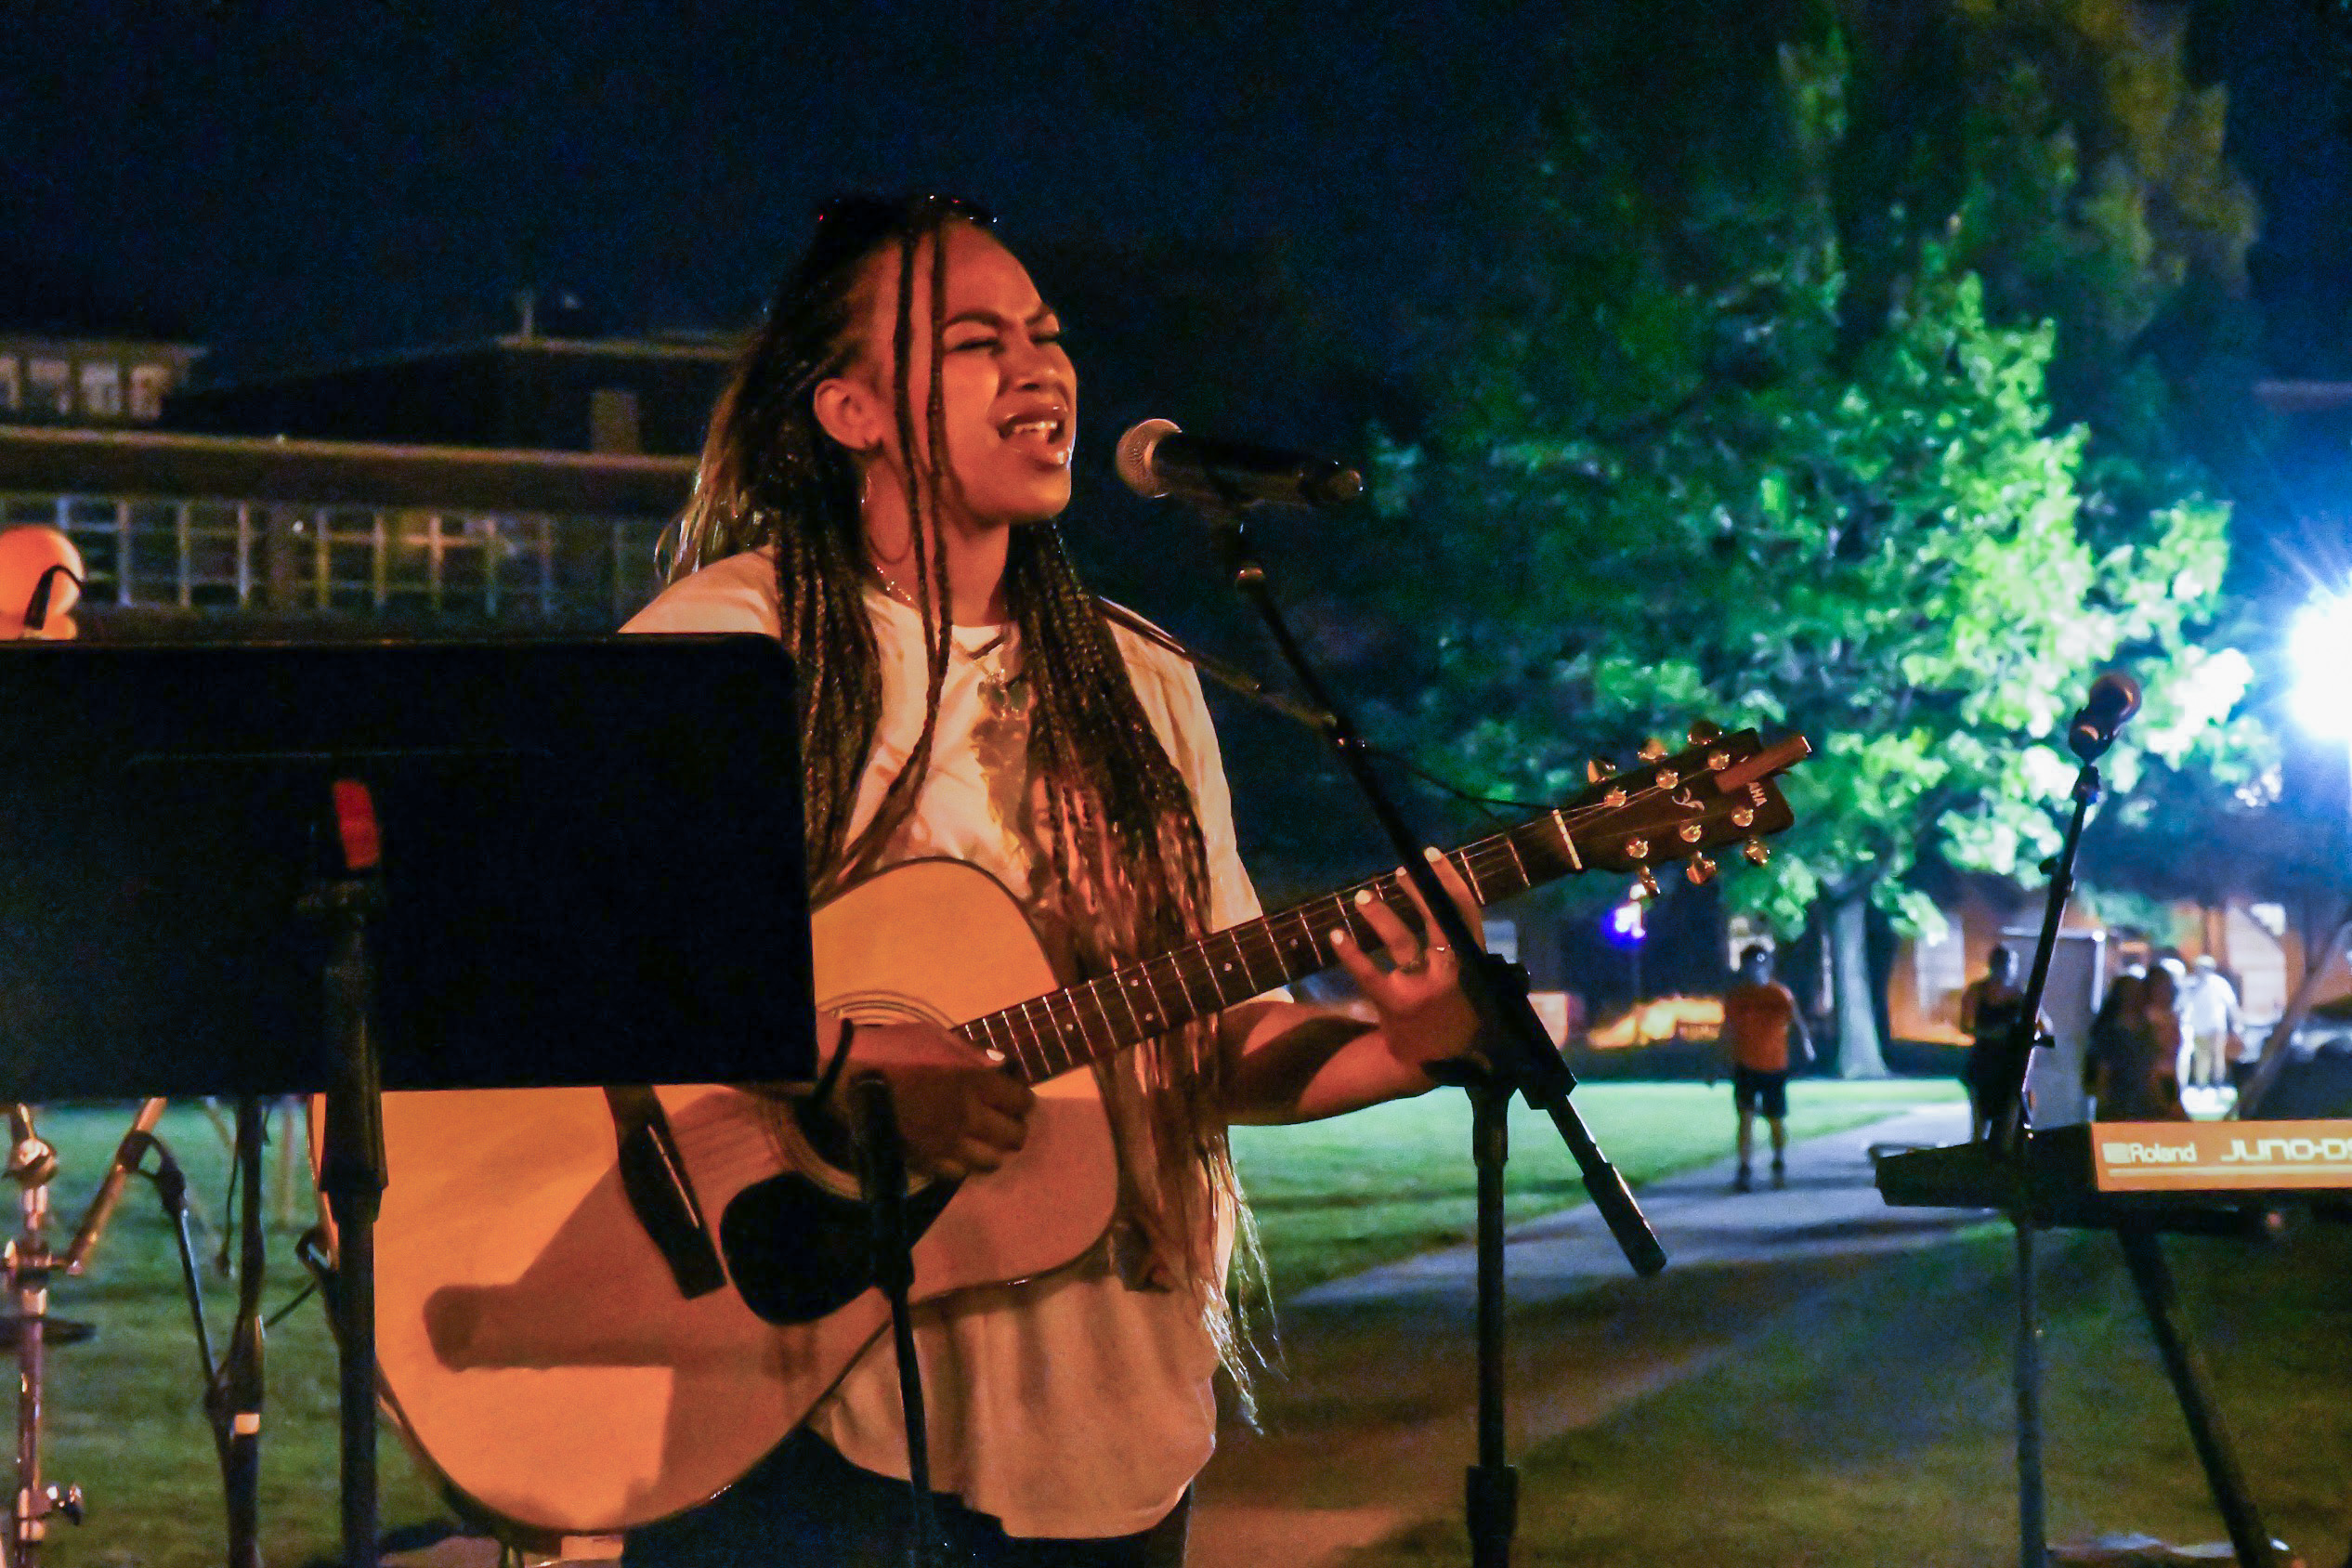 BRI singing and playing her acoustic guitar at the One with the Concert on the Orange Grove